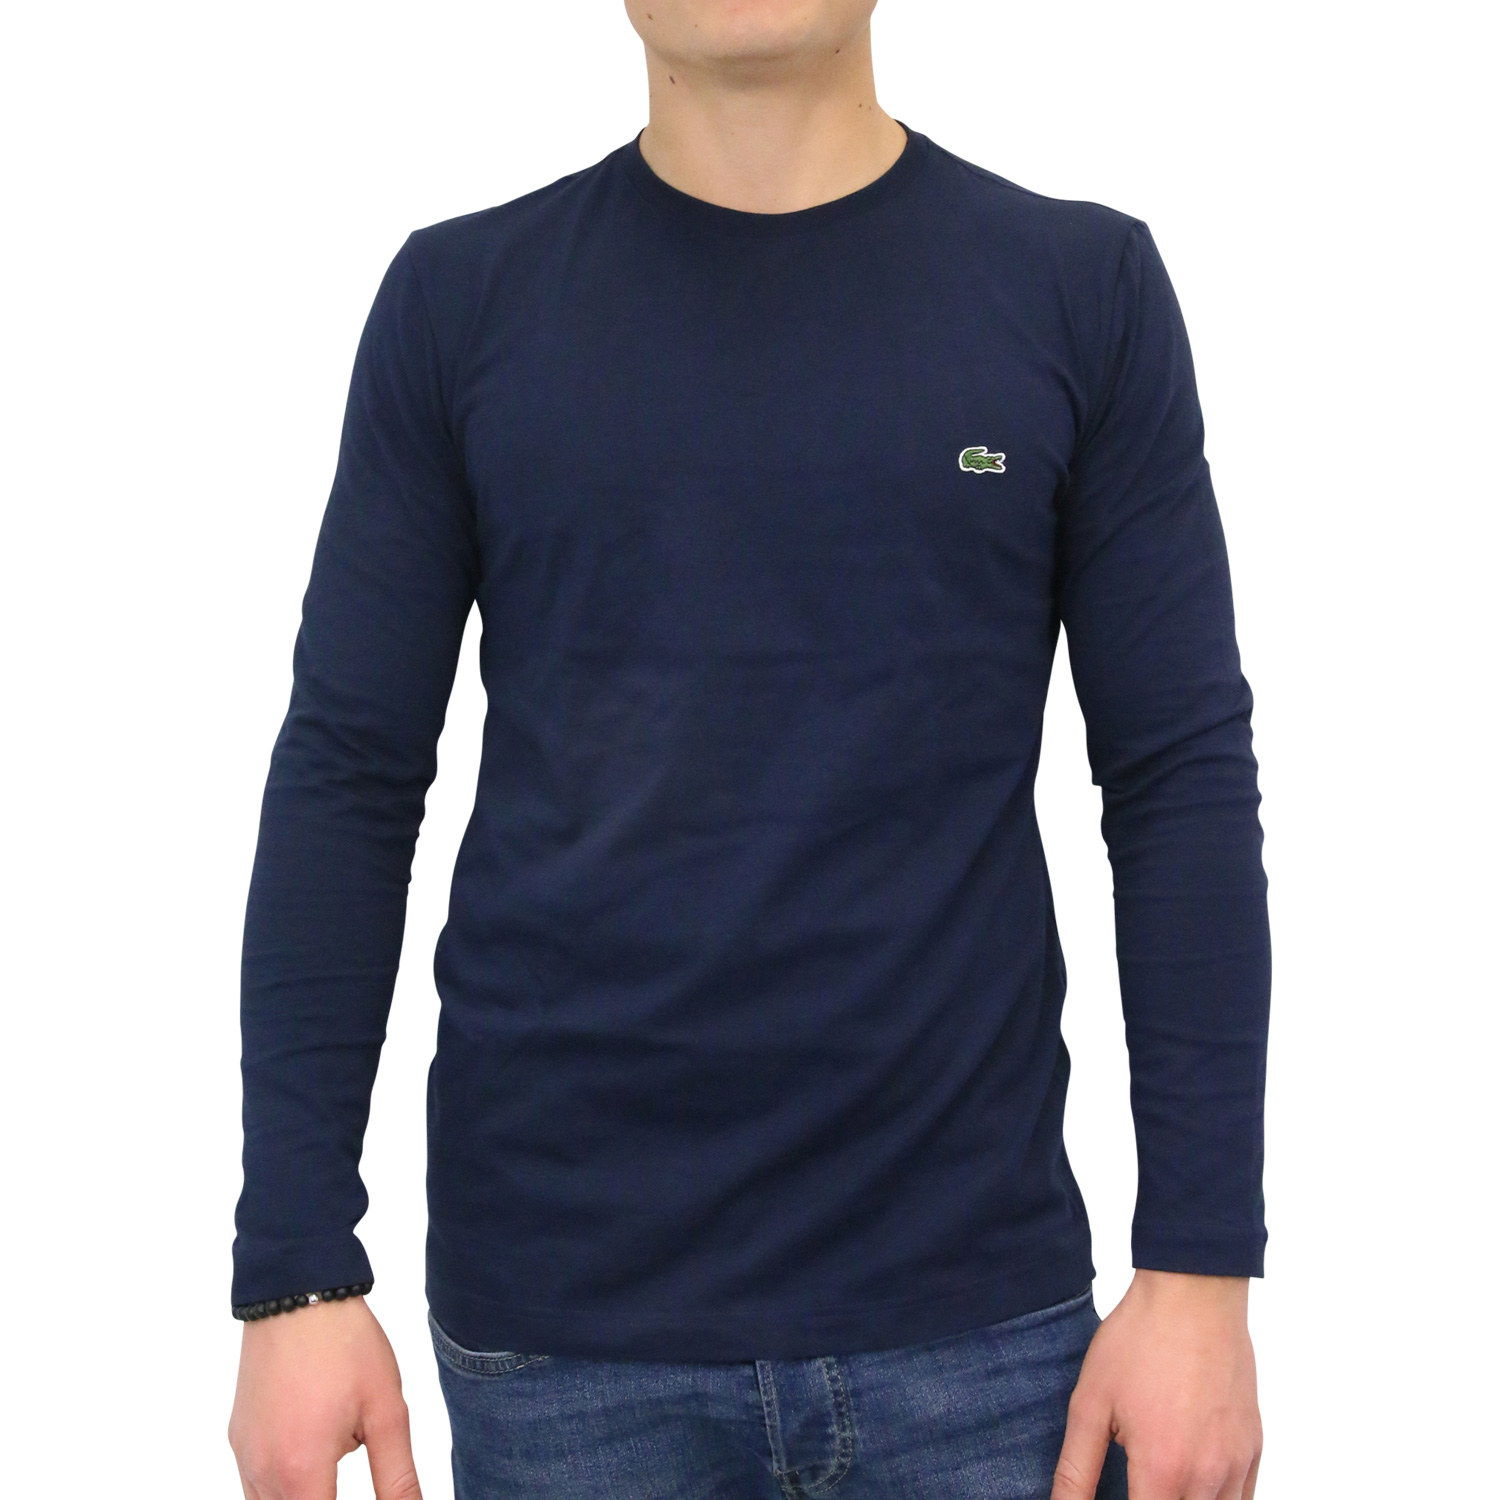 lacoste t shirt longsleeve pullover men 39 s various colors. Black Bedroom Furniture Sets. Home Design Ideas